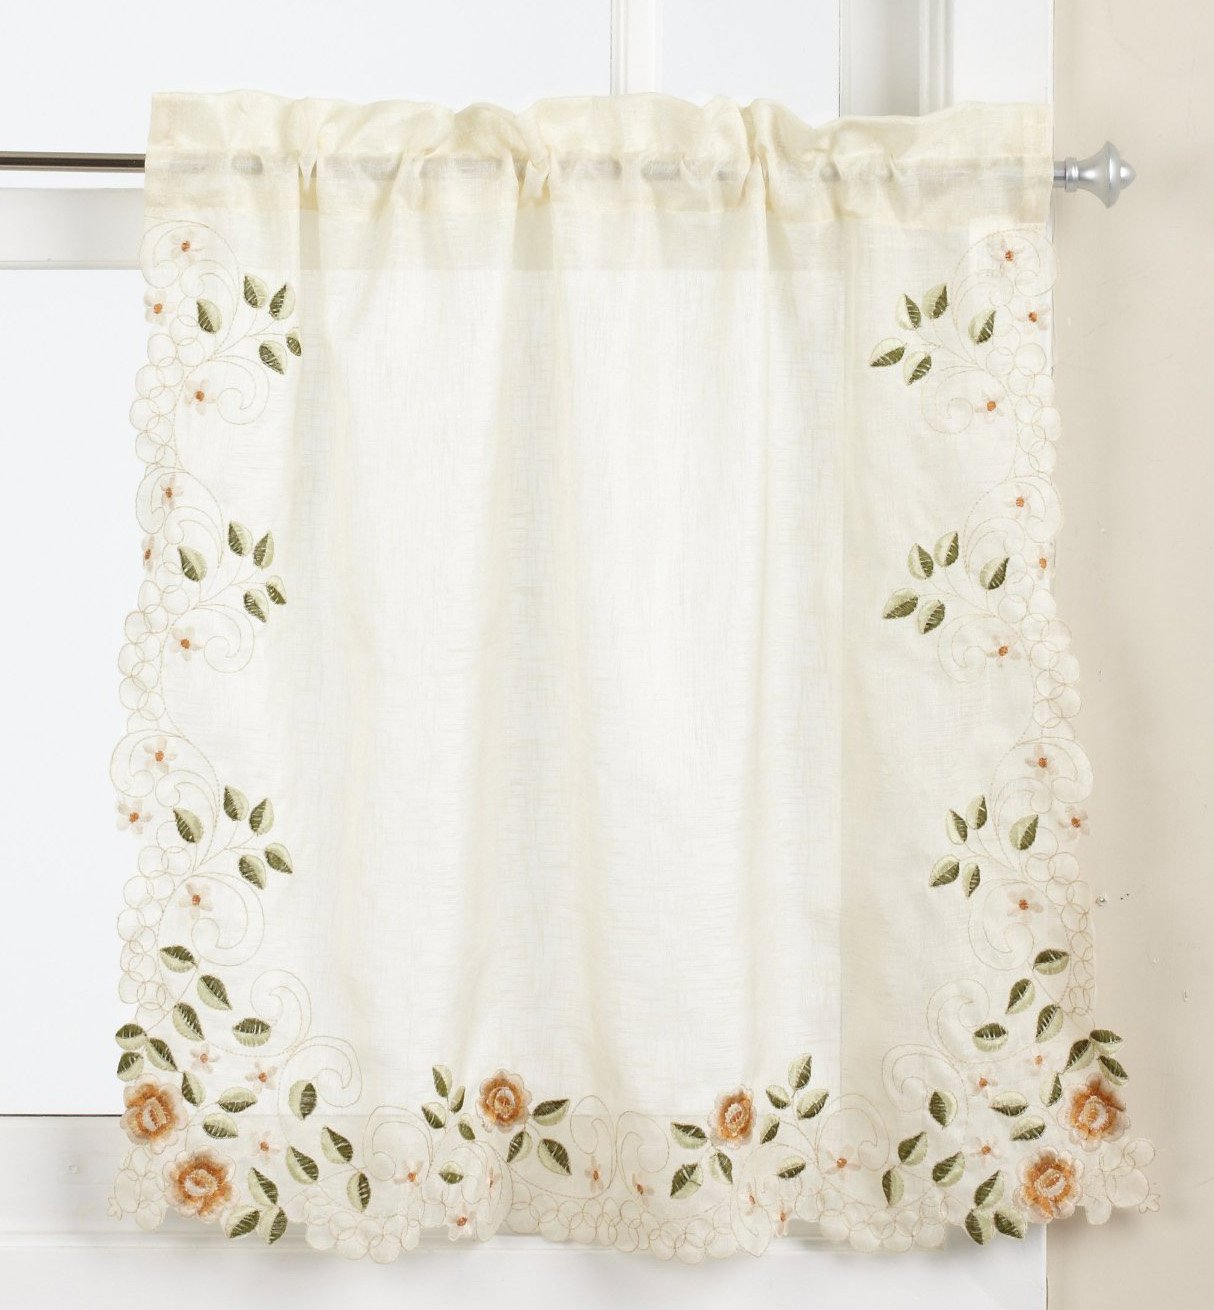 Linen Lorraine Home Fashions: LORRAINE HOME FASHIONS Rosemary Tier Curtain Pair, 58 By